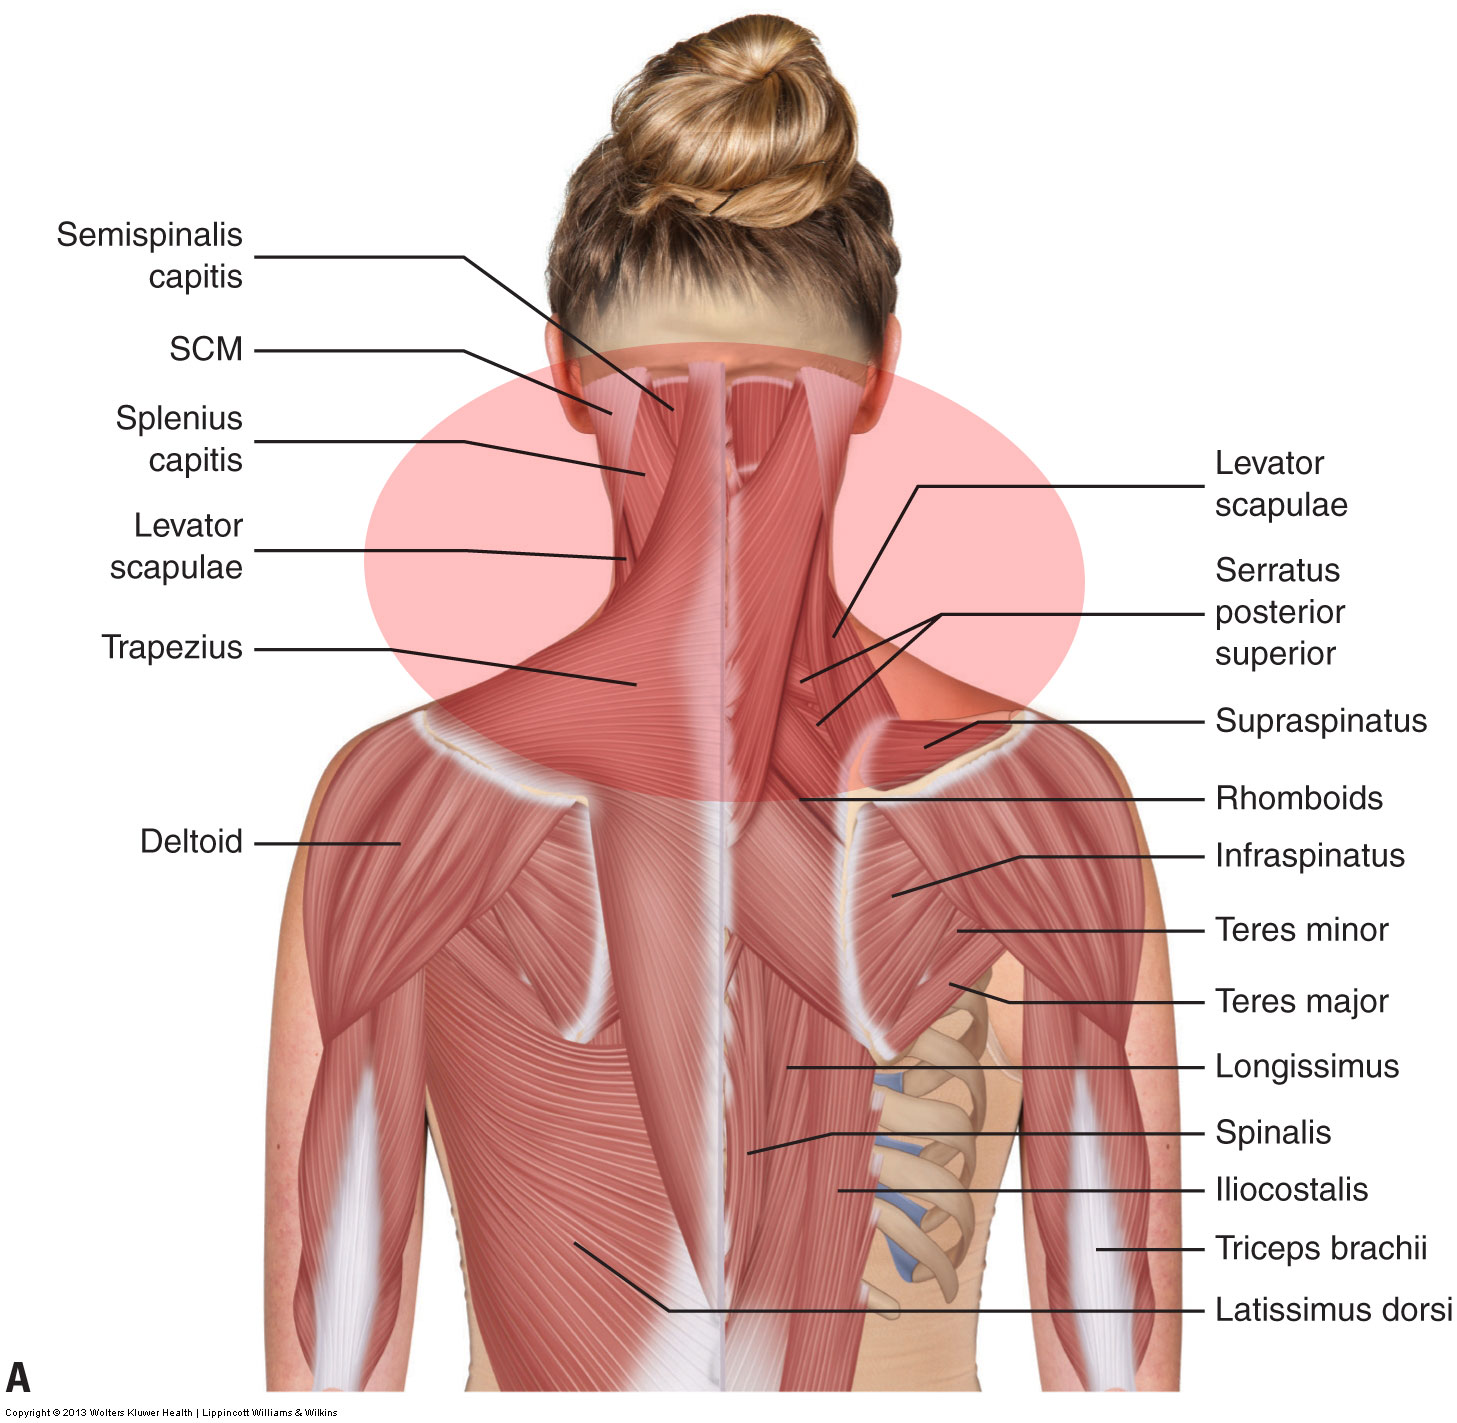 What Are The Causes Of Muscle Spasming In The Neck